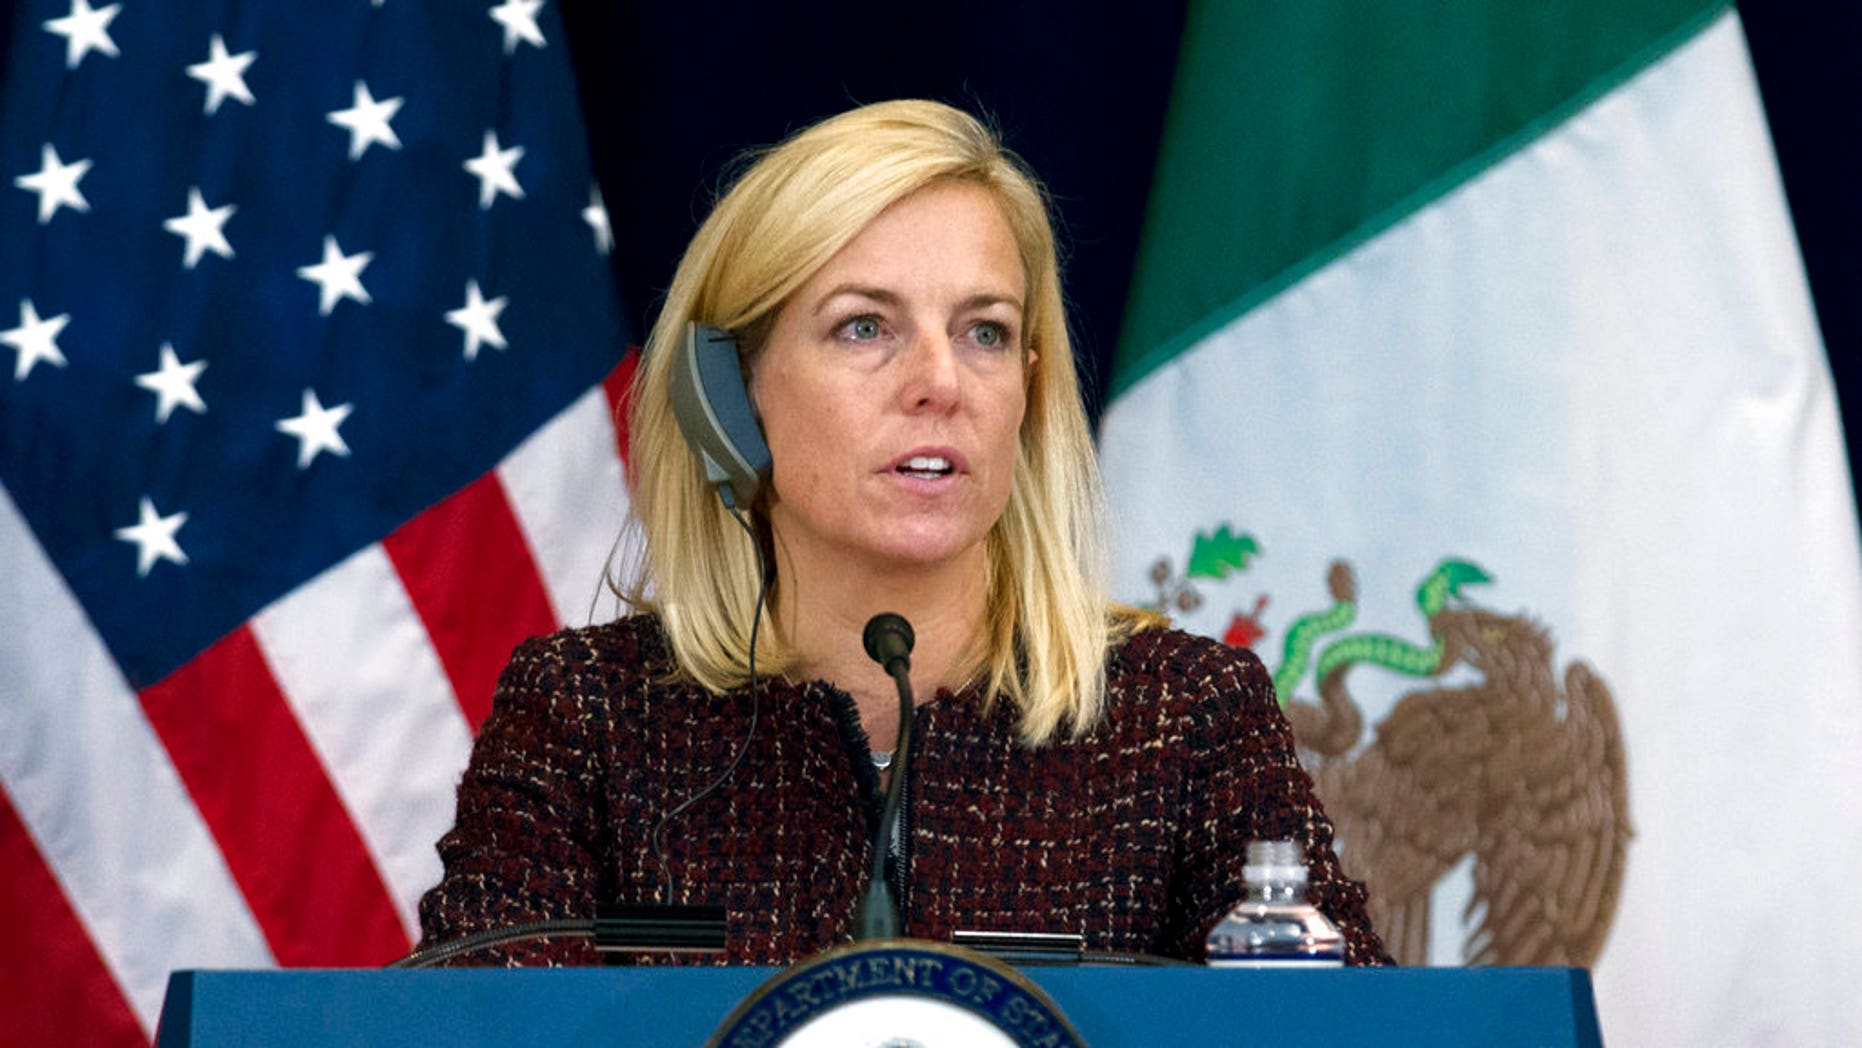 Secretary of Homeland Security Kirstjen Nielsen speaks during a news conference, after a US-Mexico bilateral meeting on disrupting transnational criminal organizations at State Department in Washington, Thursday, Dec. 14, 2017. ( AP Photo/Jose Luis Magana)